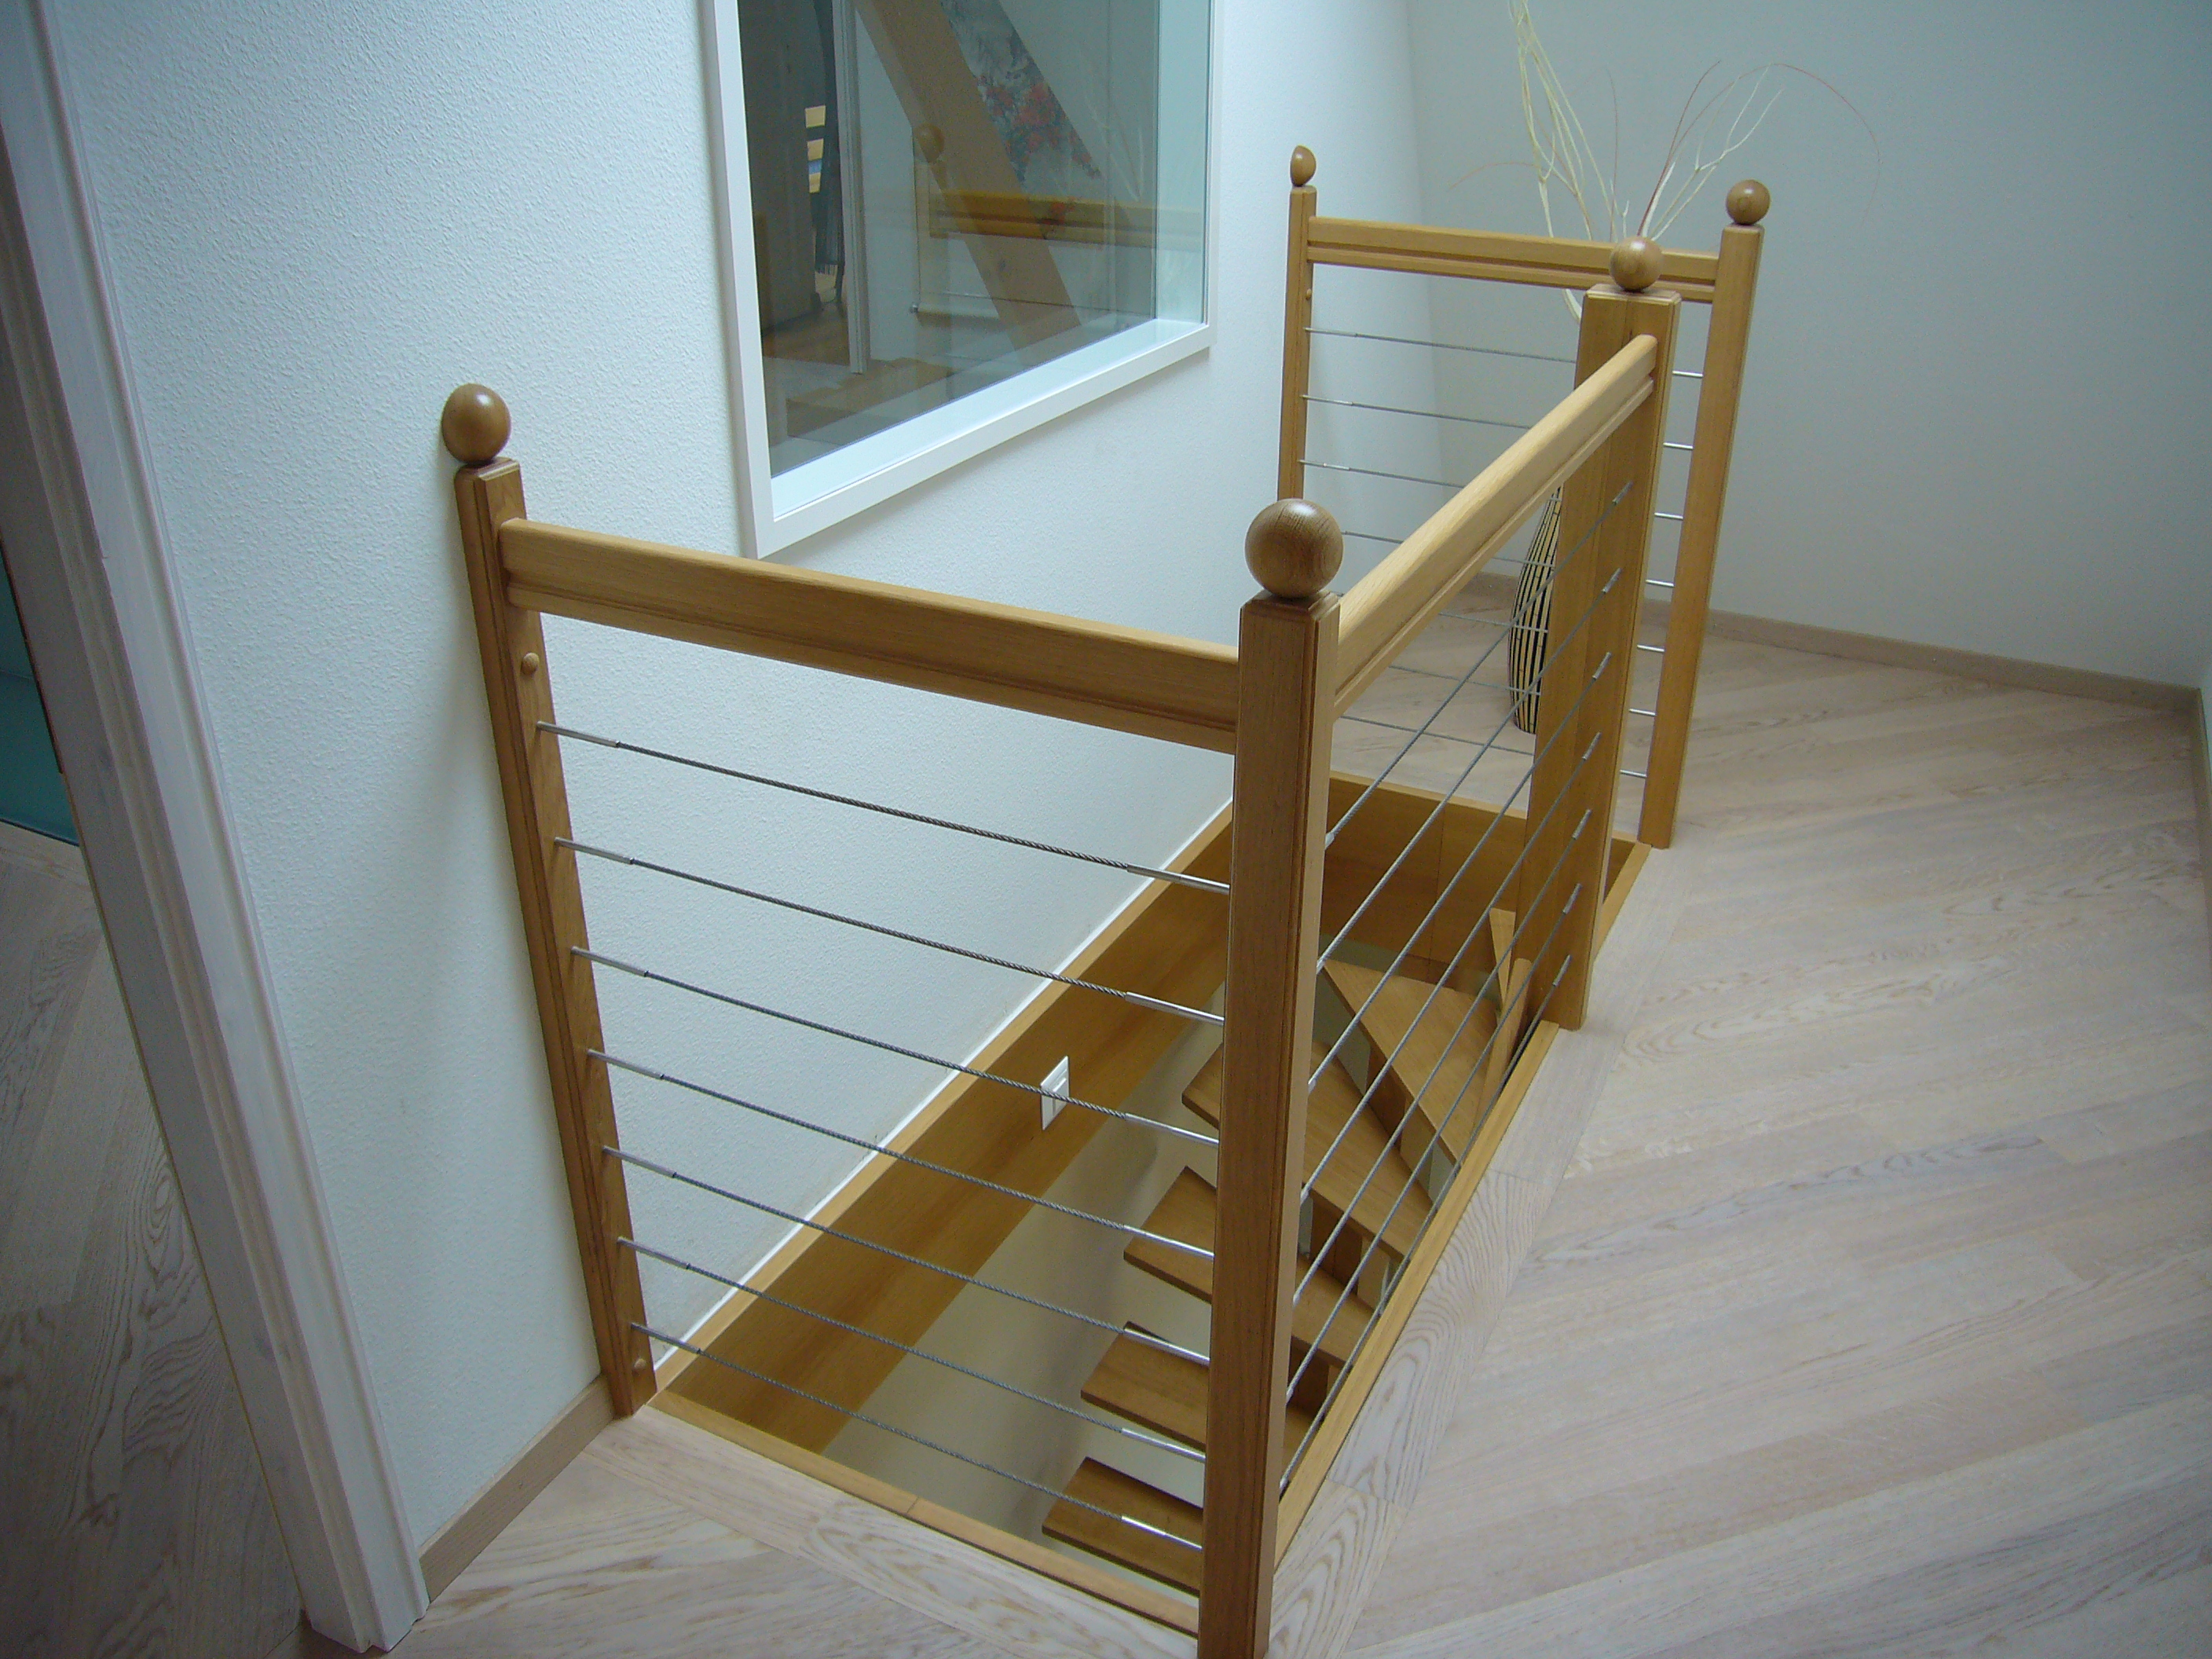 barriere escalier wikilia fr